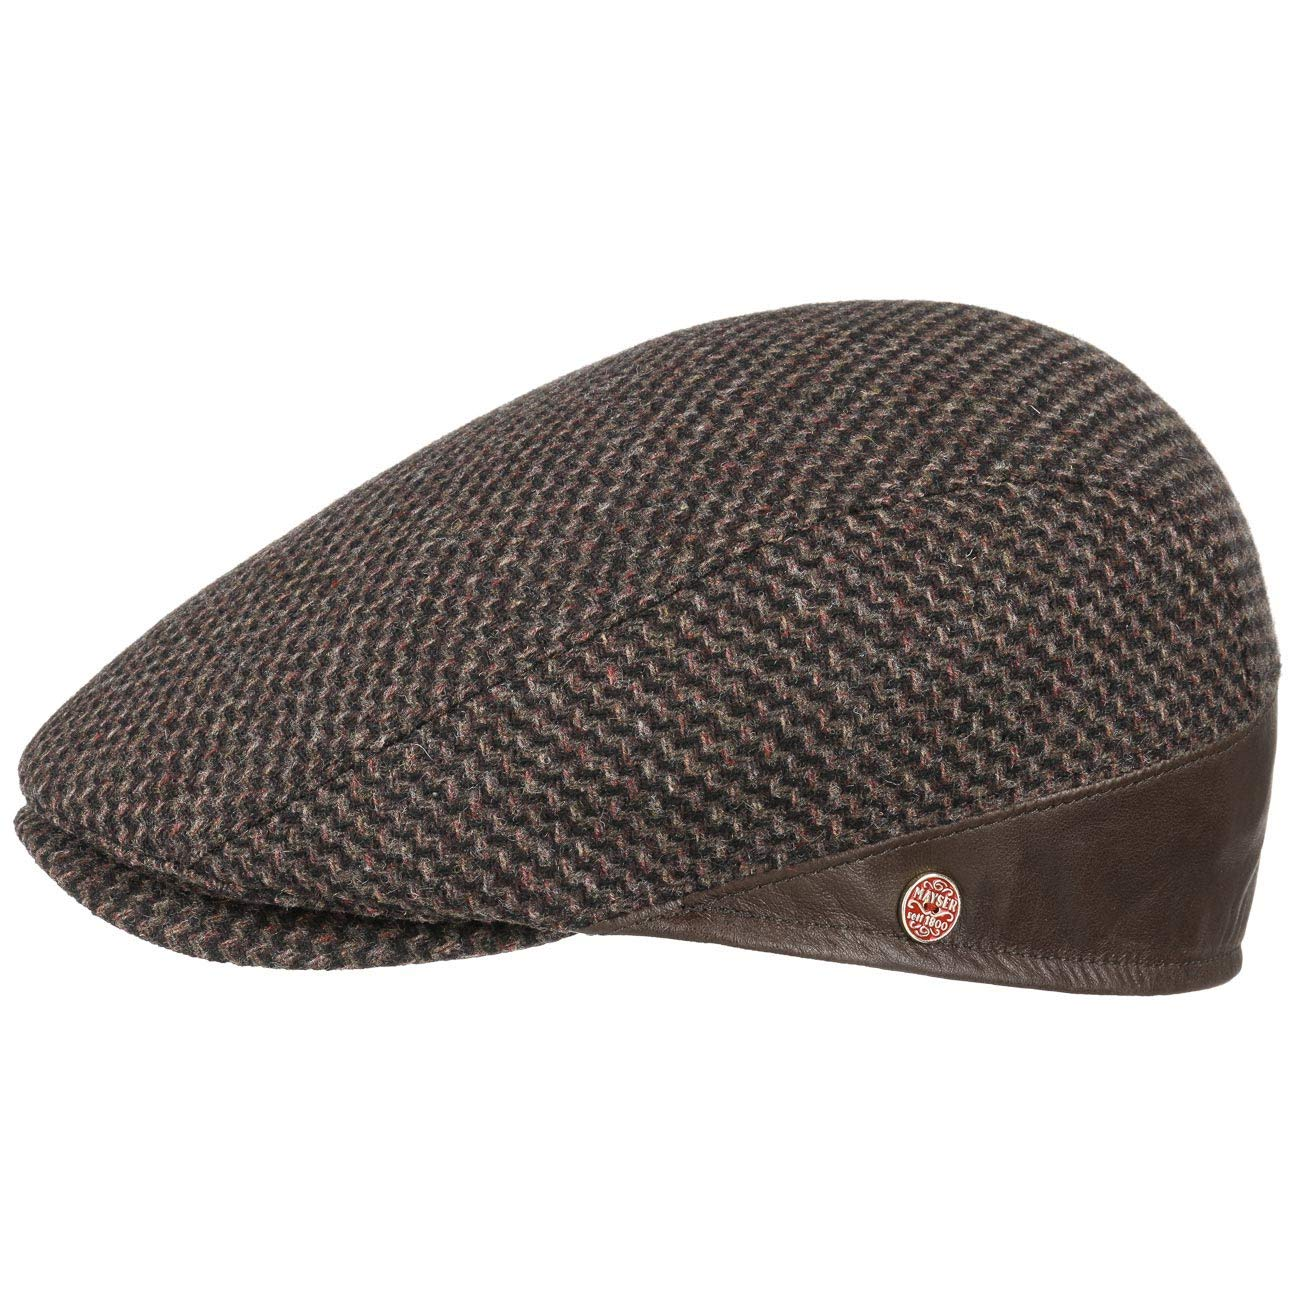 Made in The EU Mayser Delian Wool Flat Cap with Leather Men